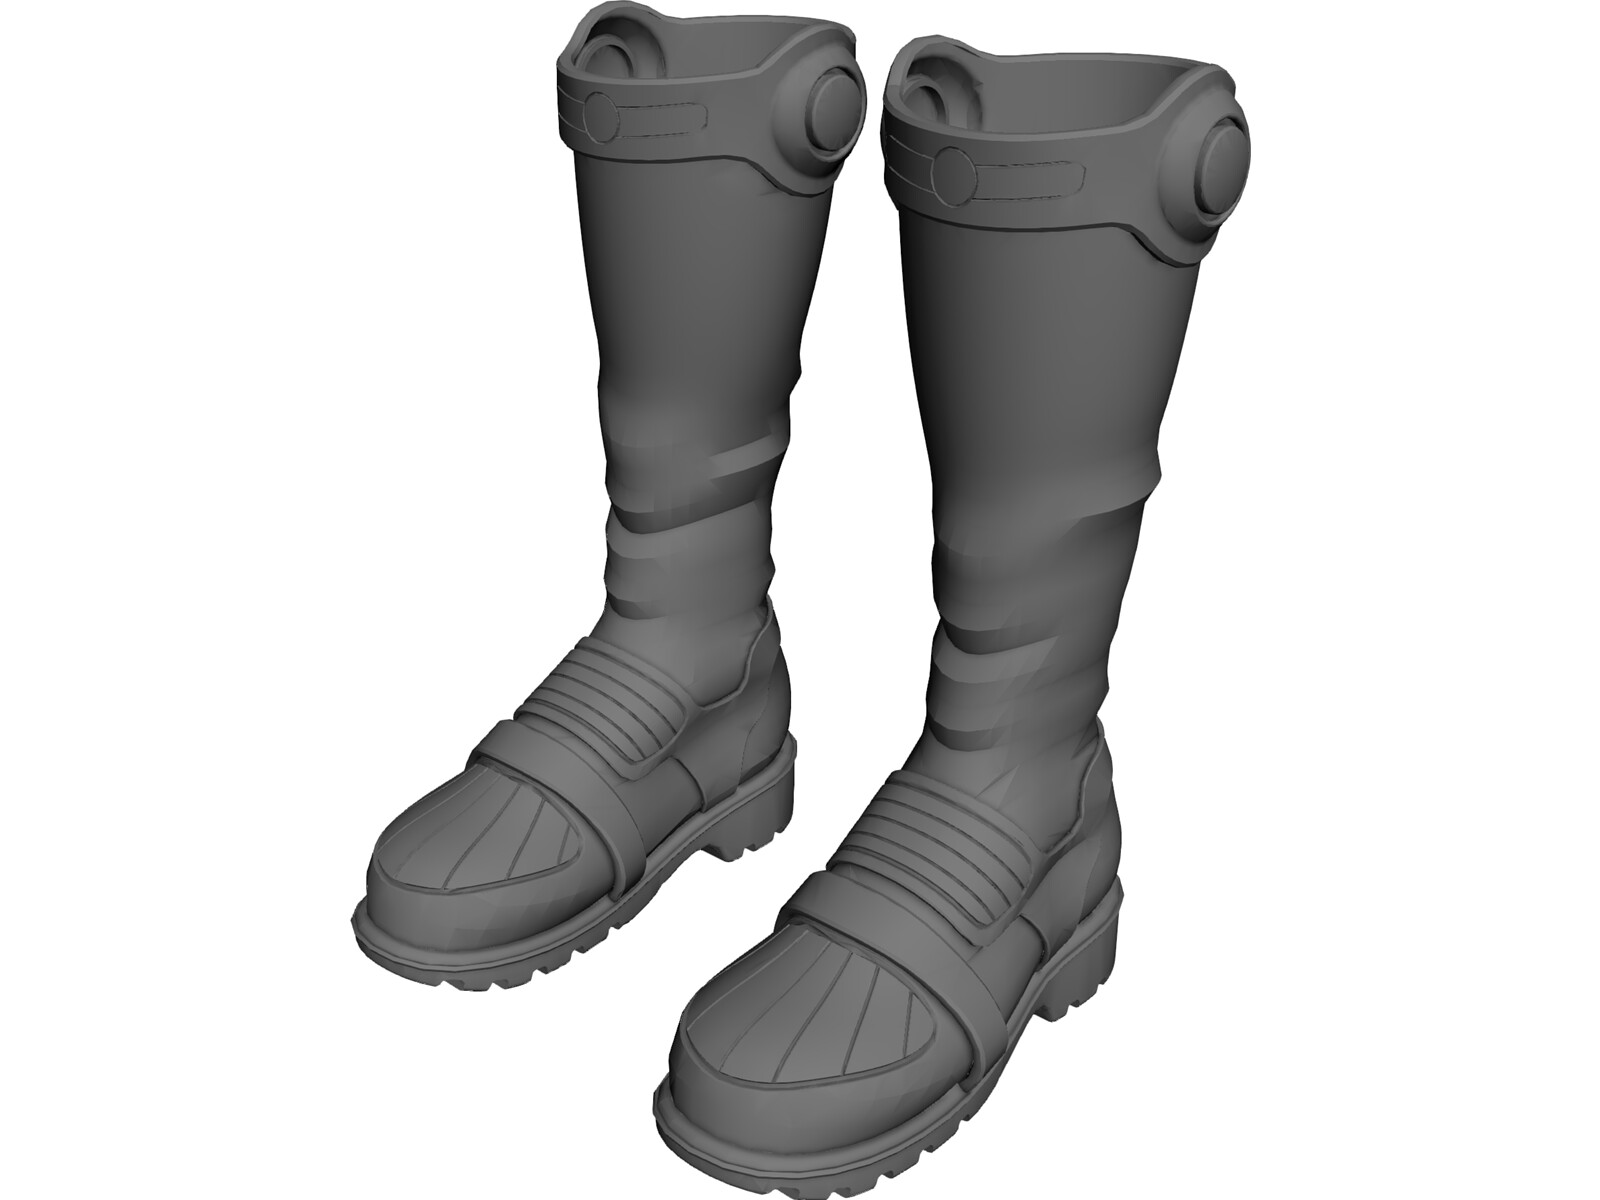 SciFi Boots Female for Genesis   3D Models and 3D Software by Daz 3D